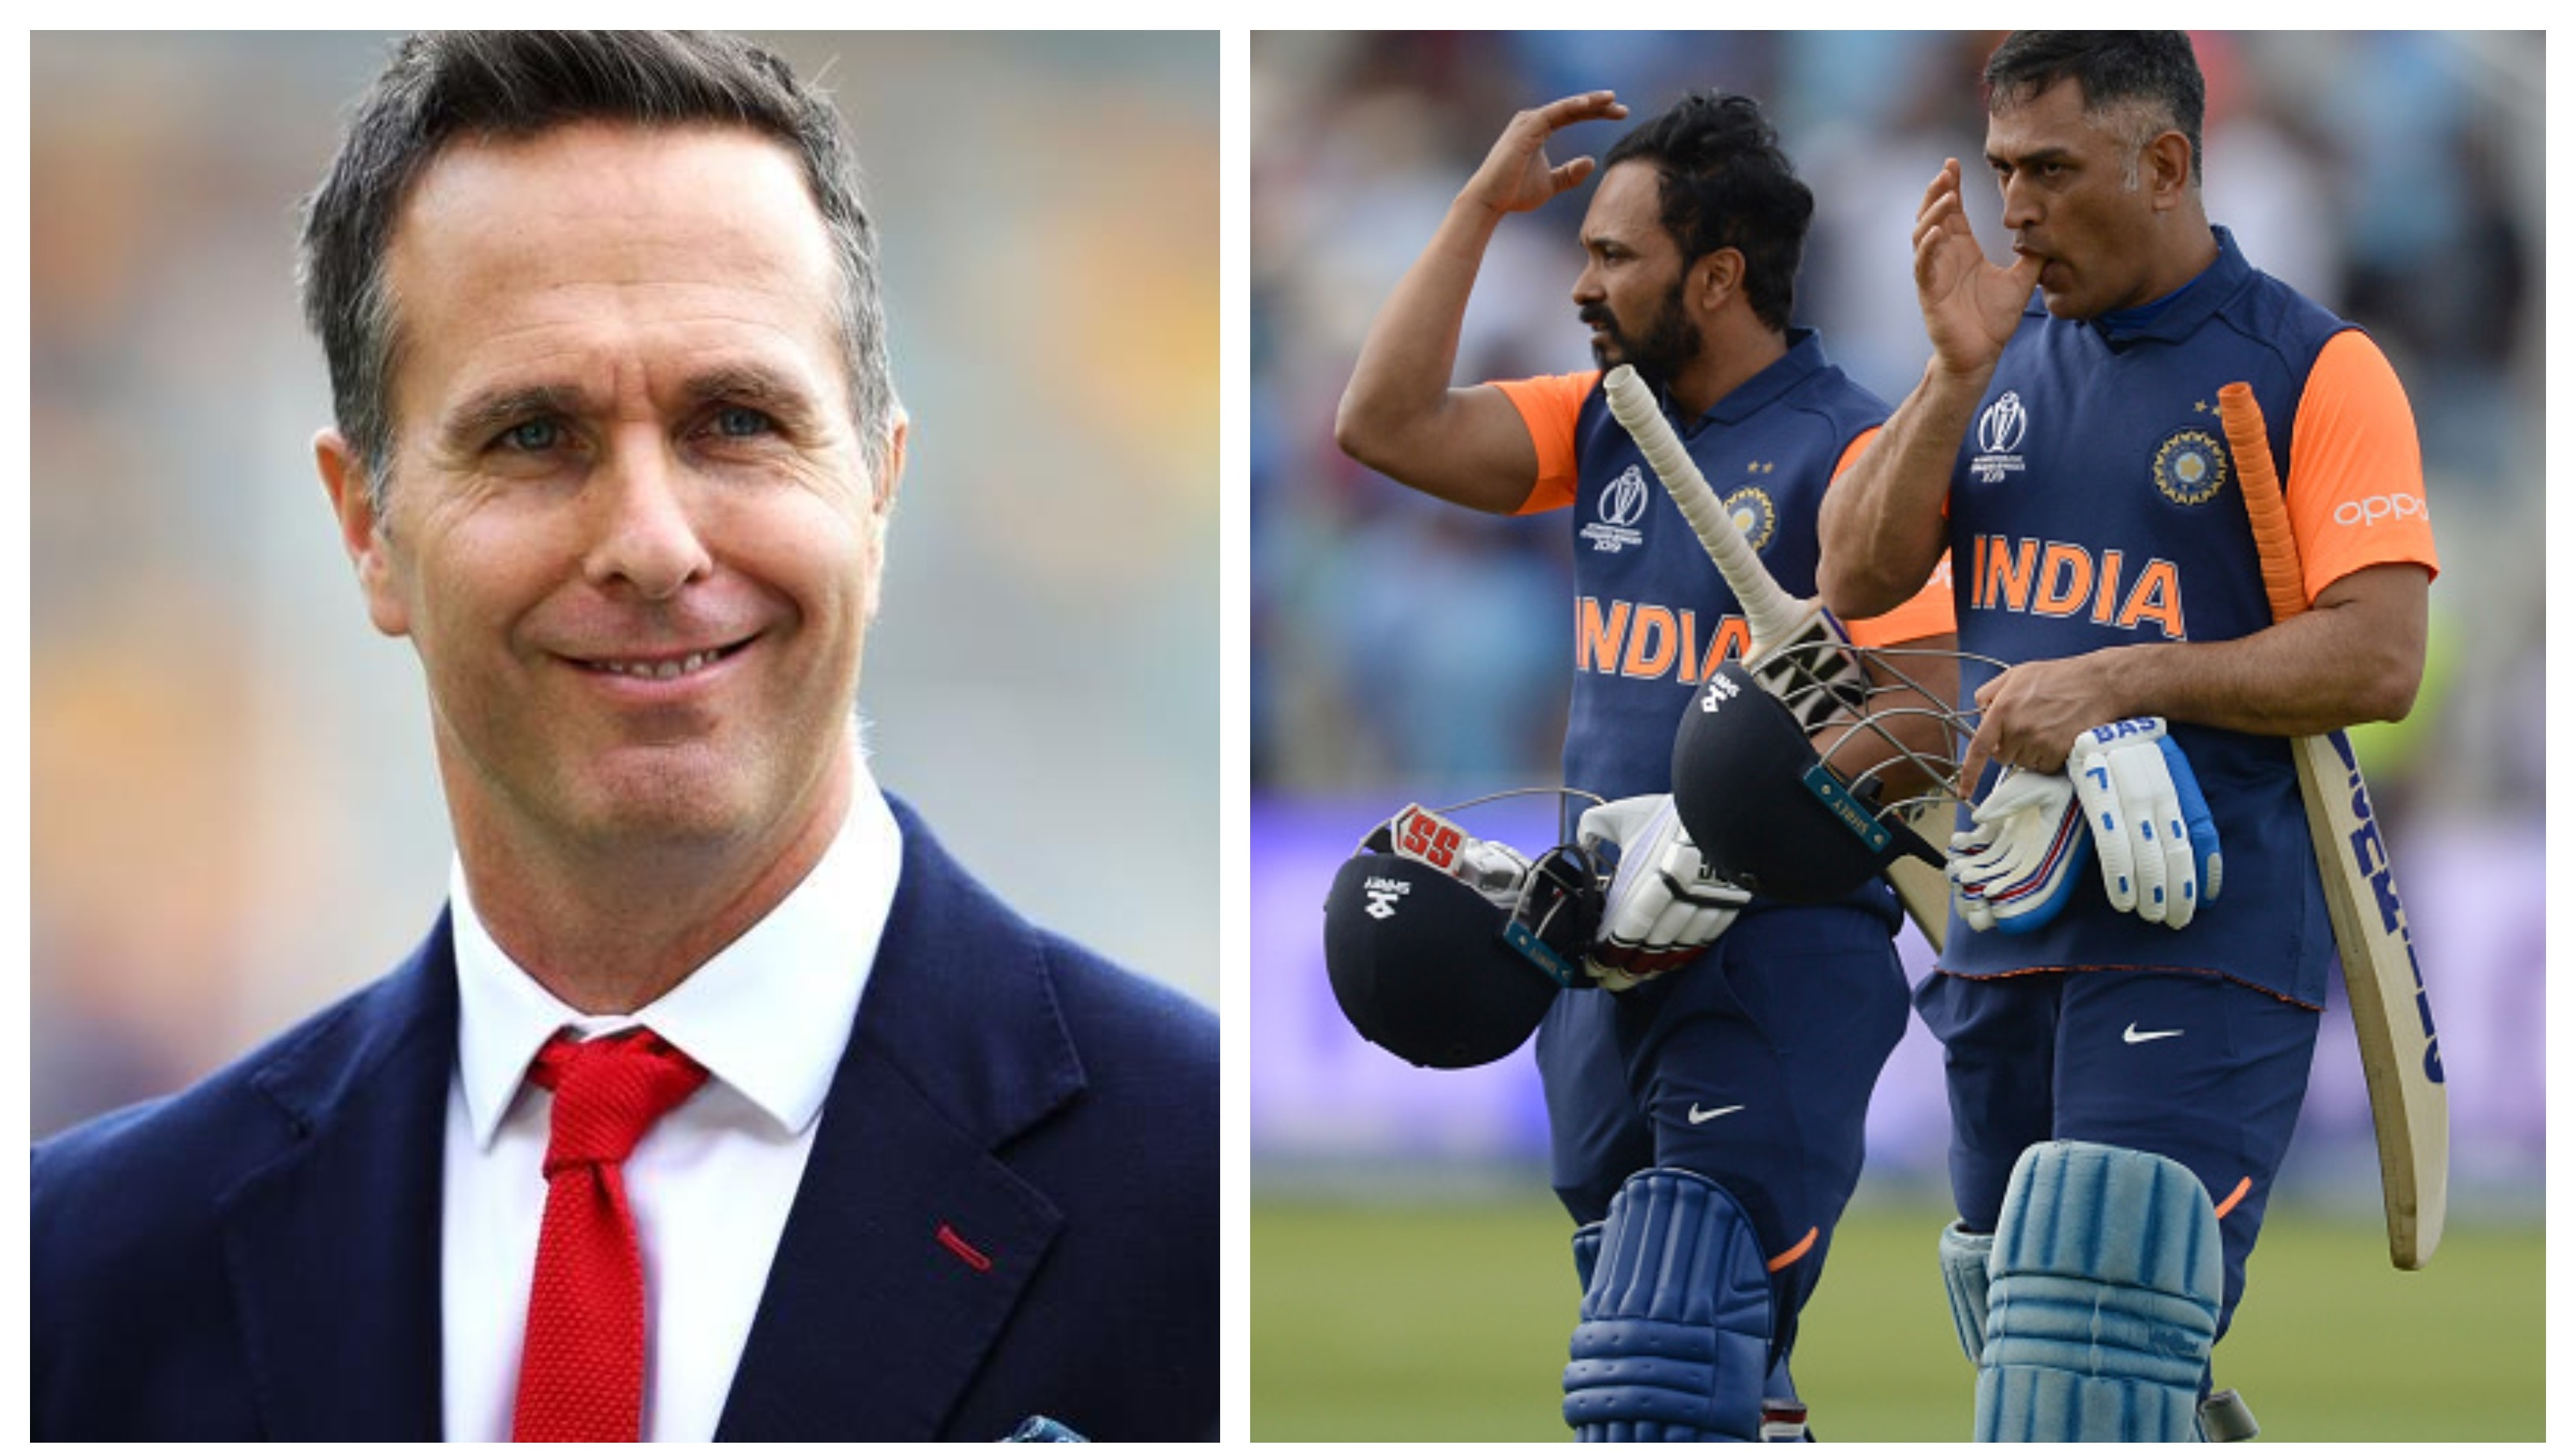 CWC 2019: Michael Vaughan takes a jibe at Team India's intent-less chase against England